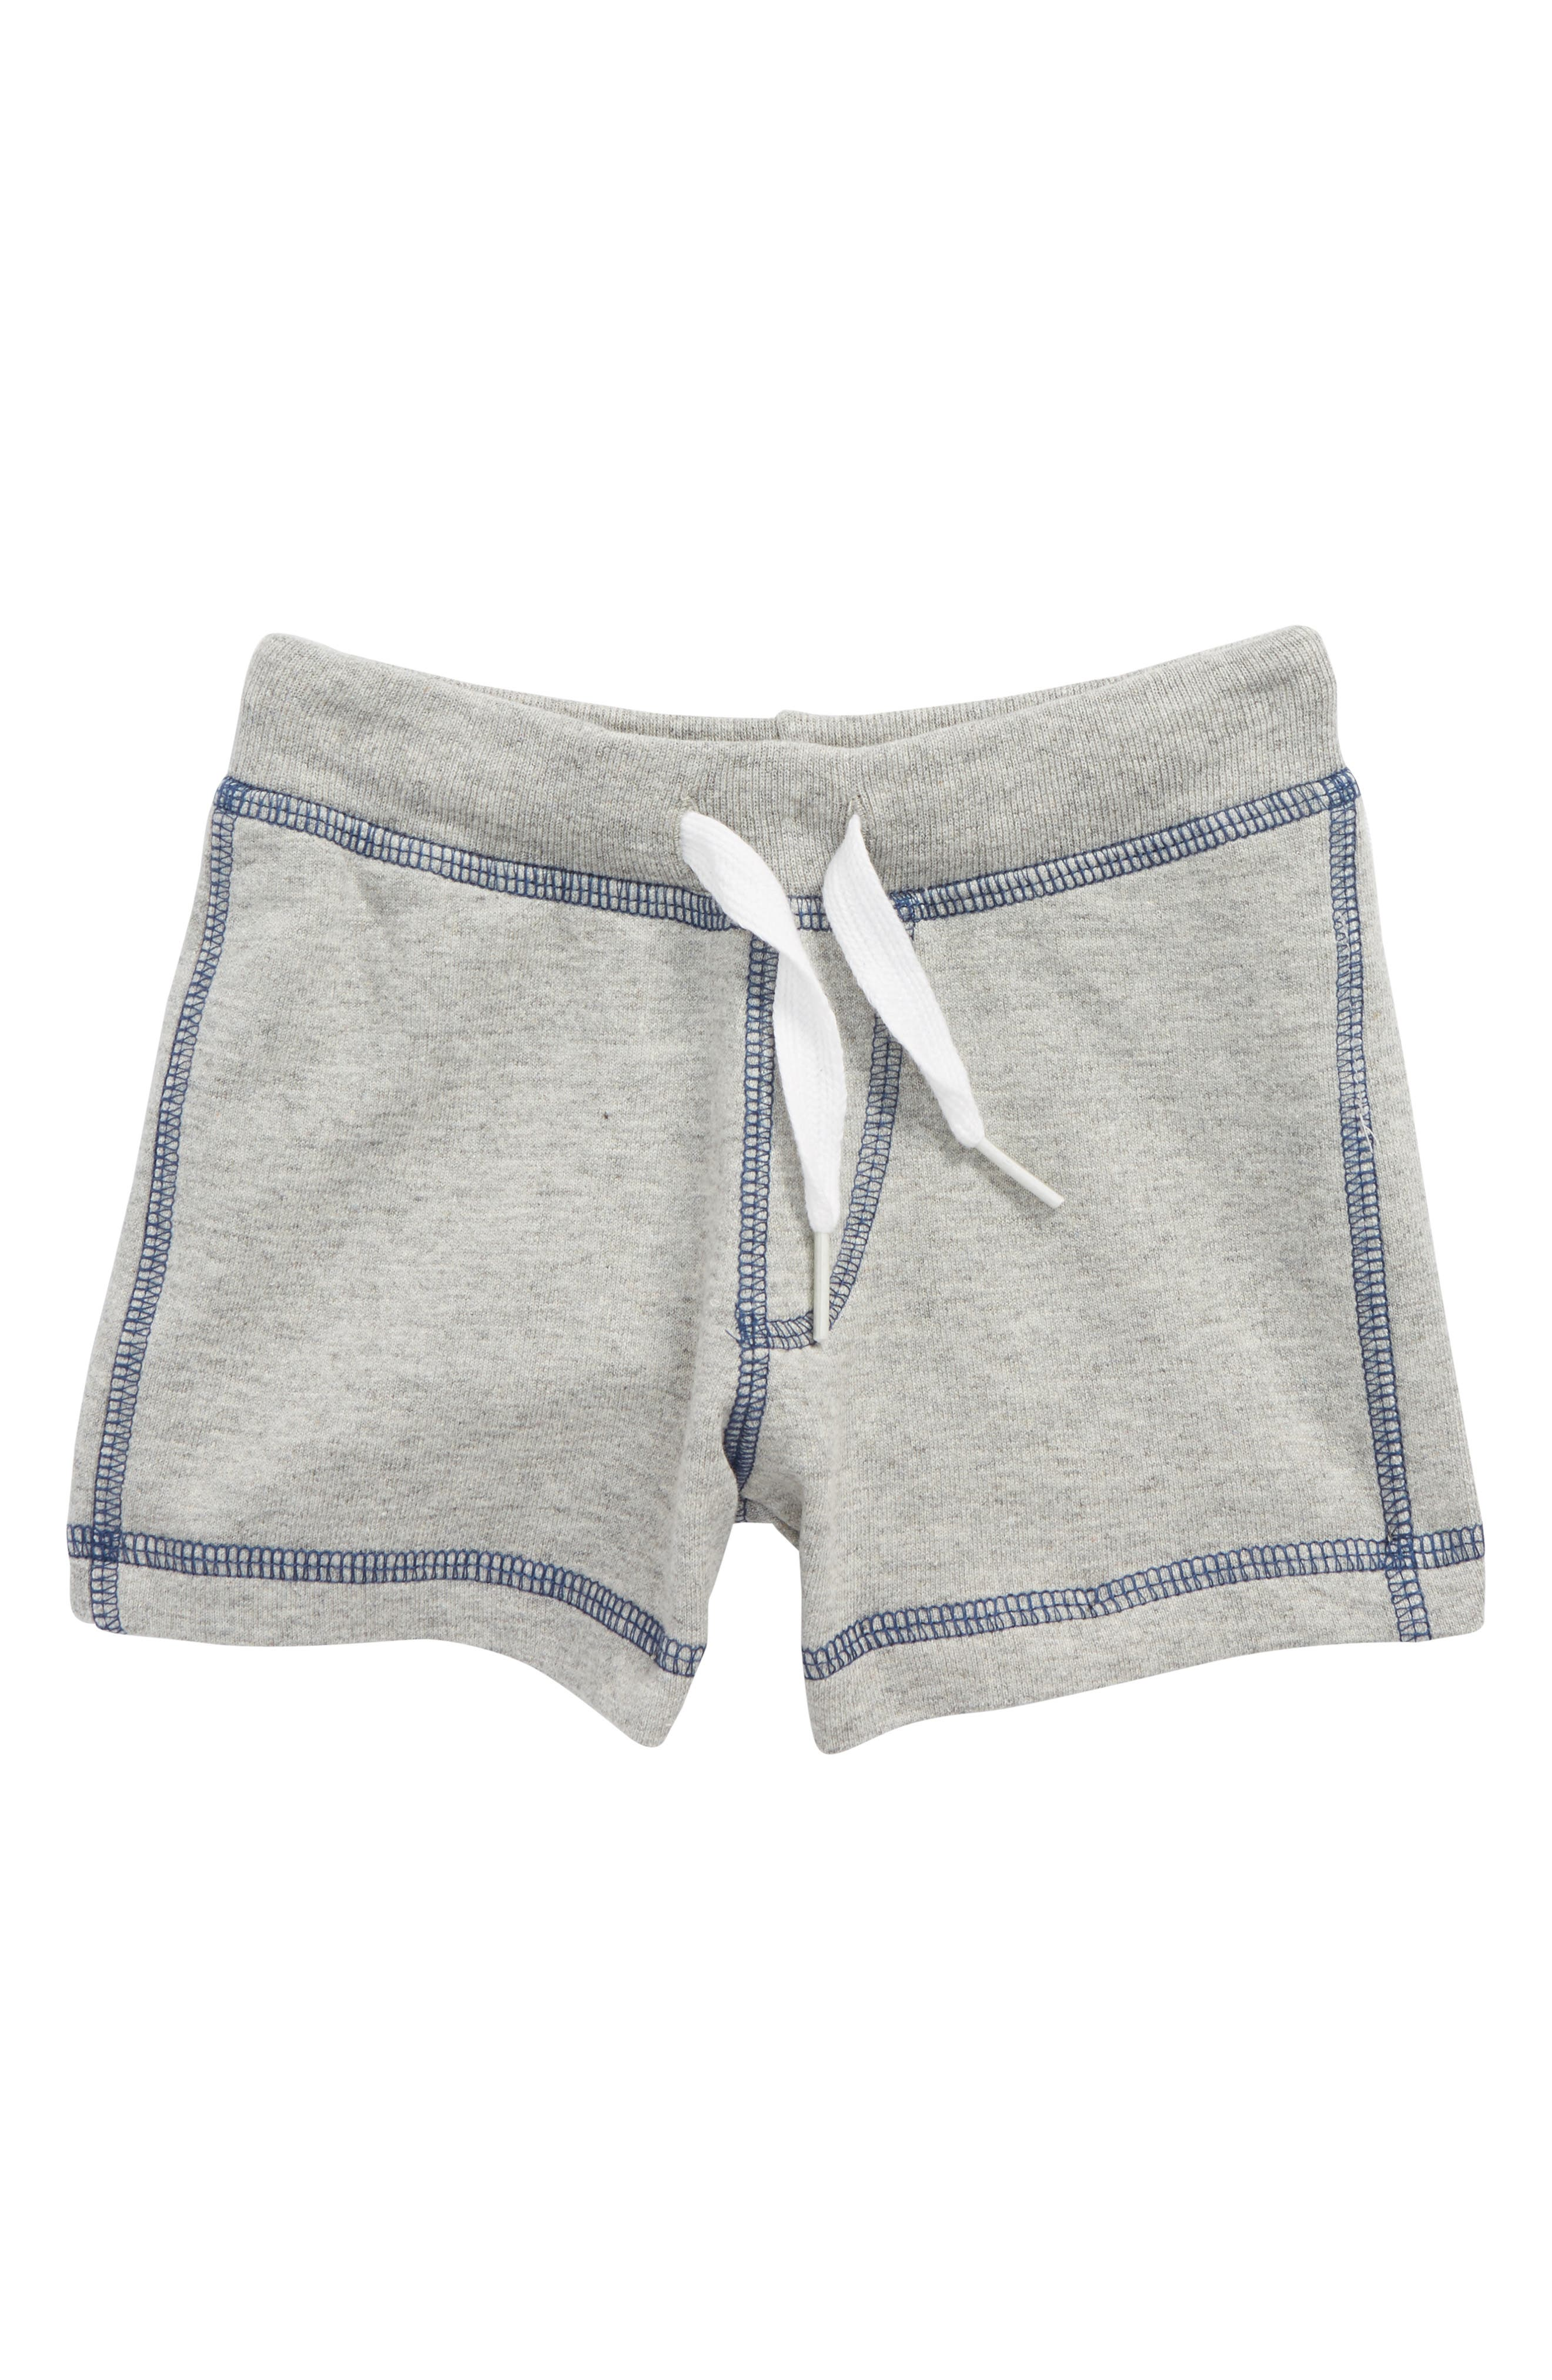 Pull-On Shorts,                         Main,                         color, 020